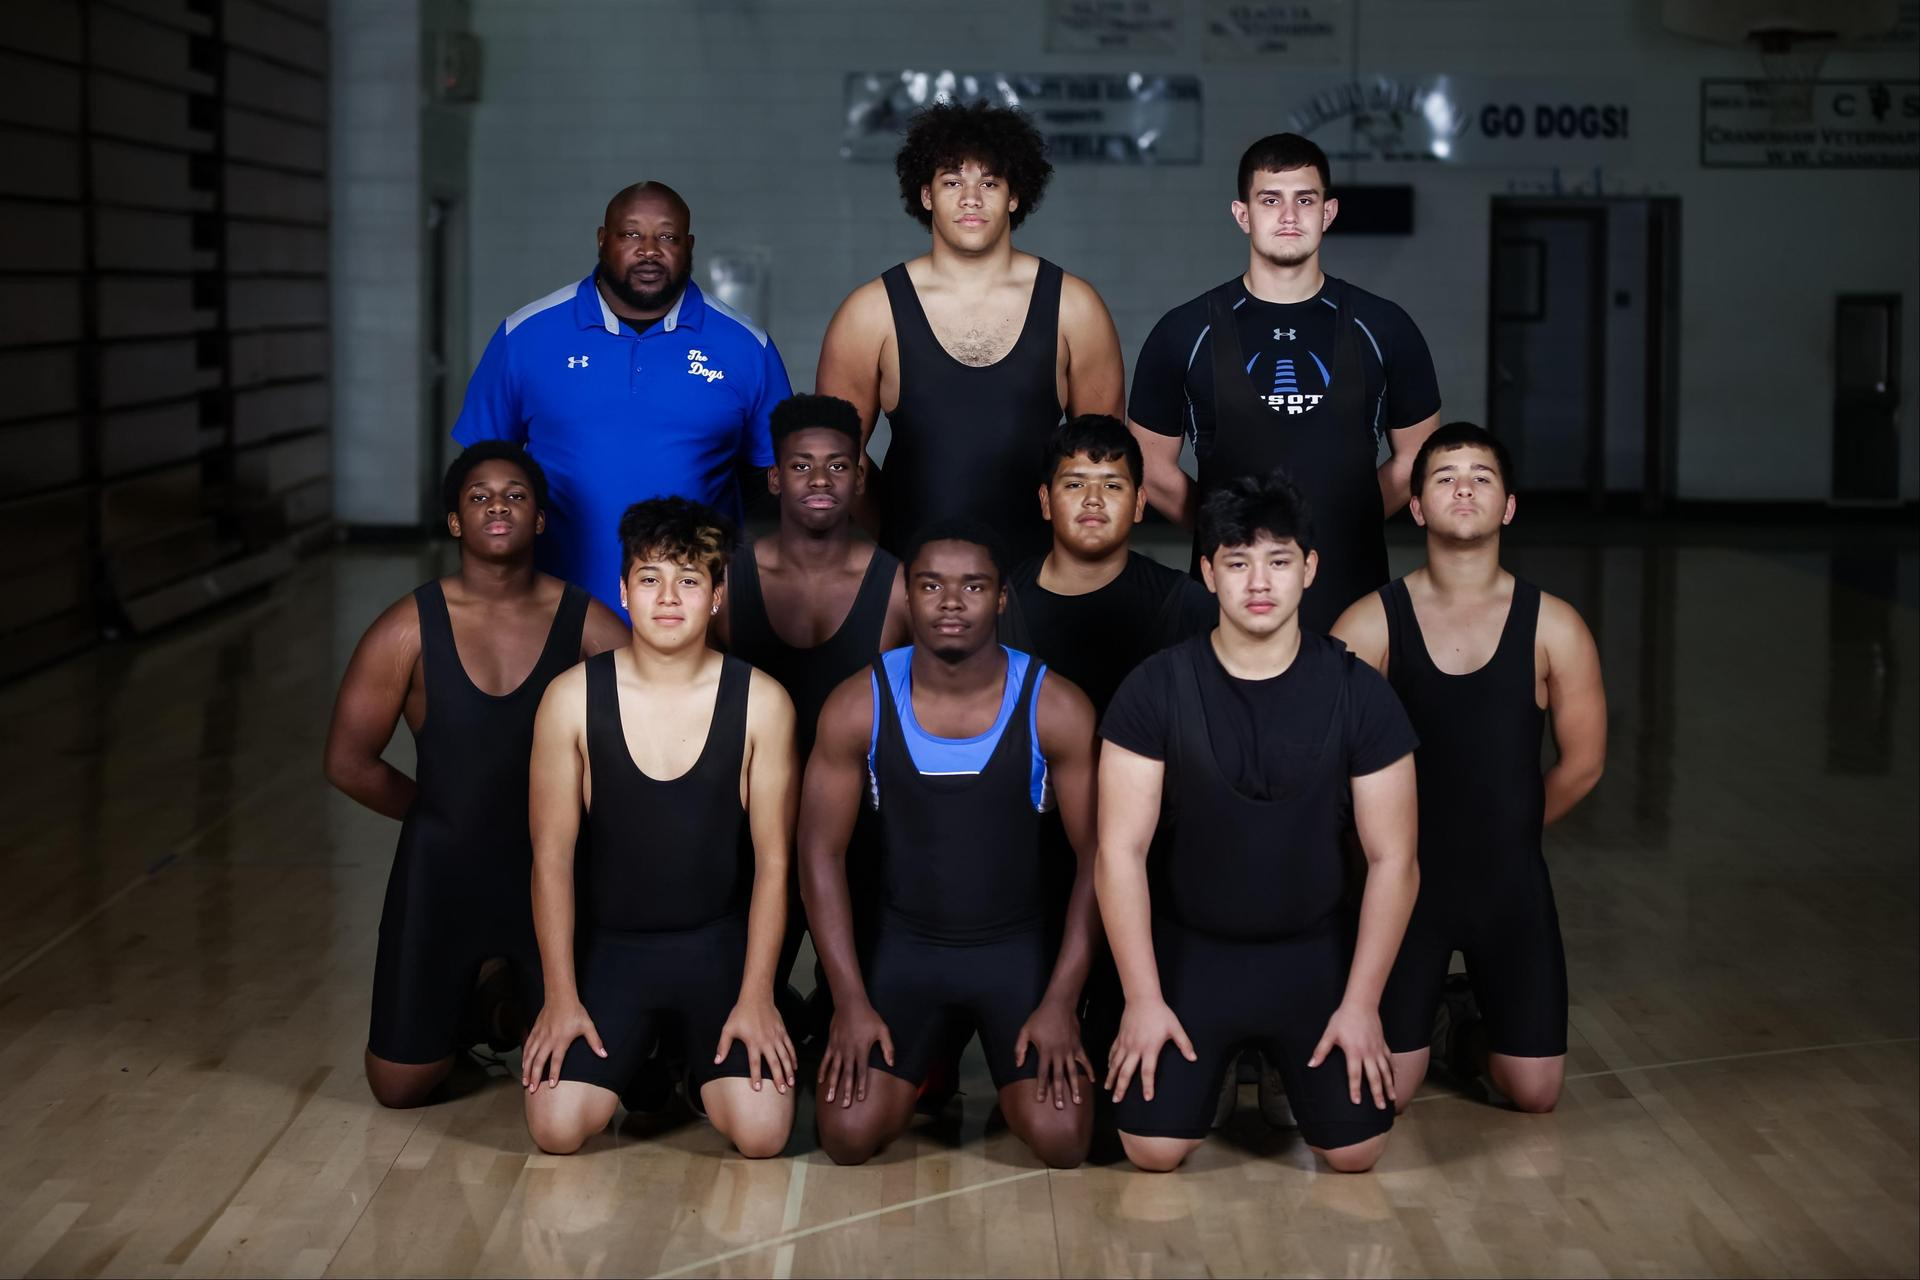 DHS Boys weightlifting team